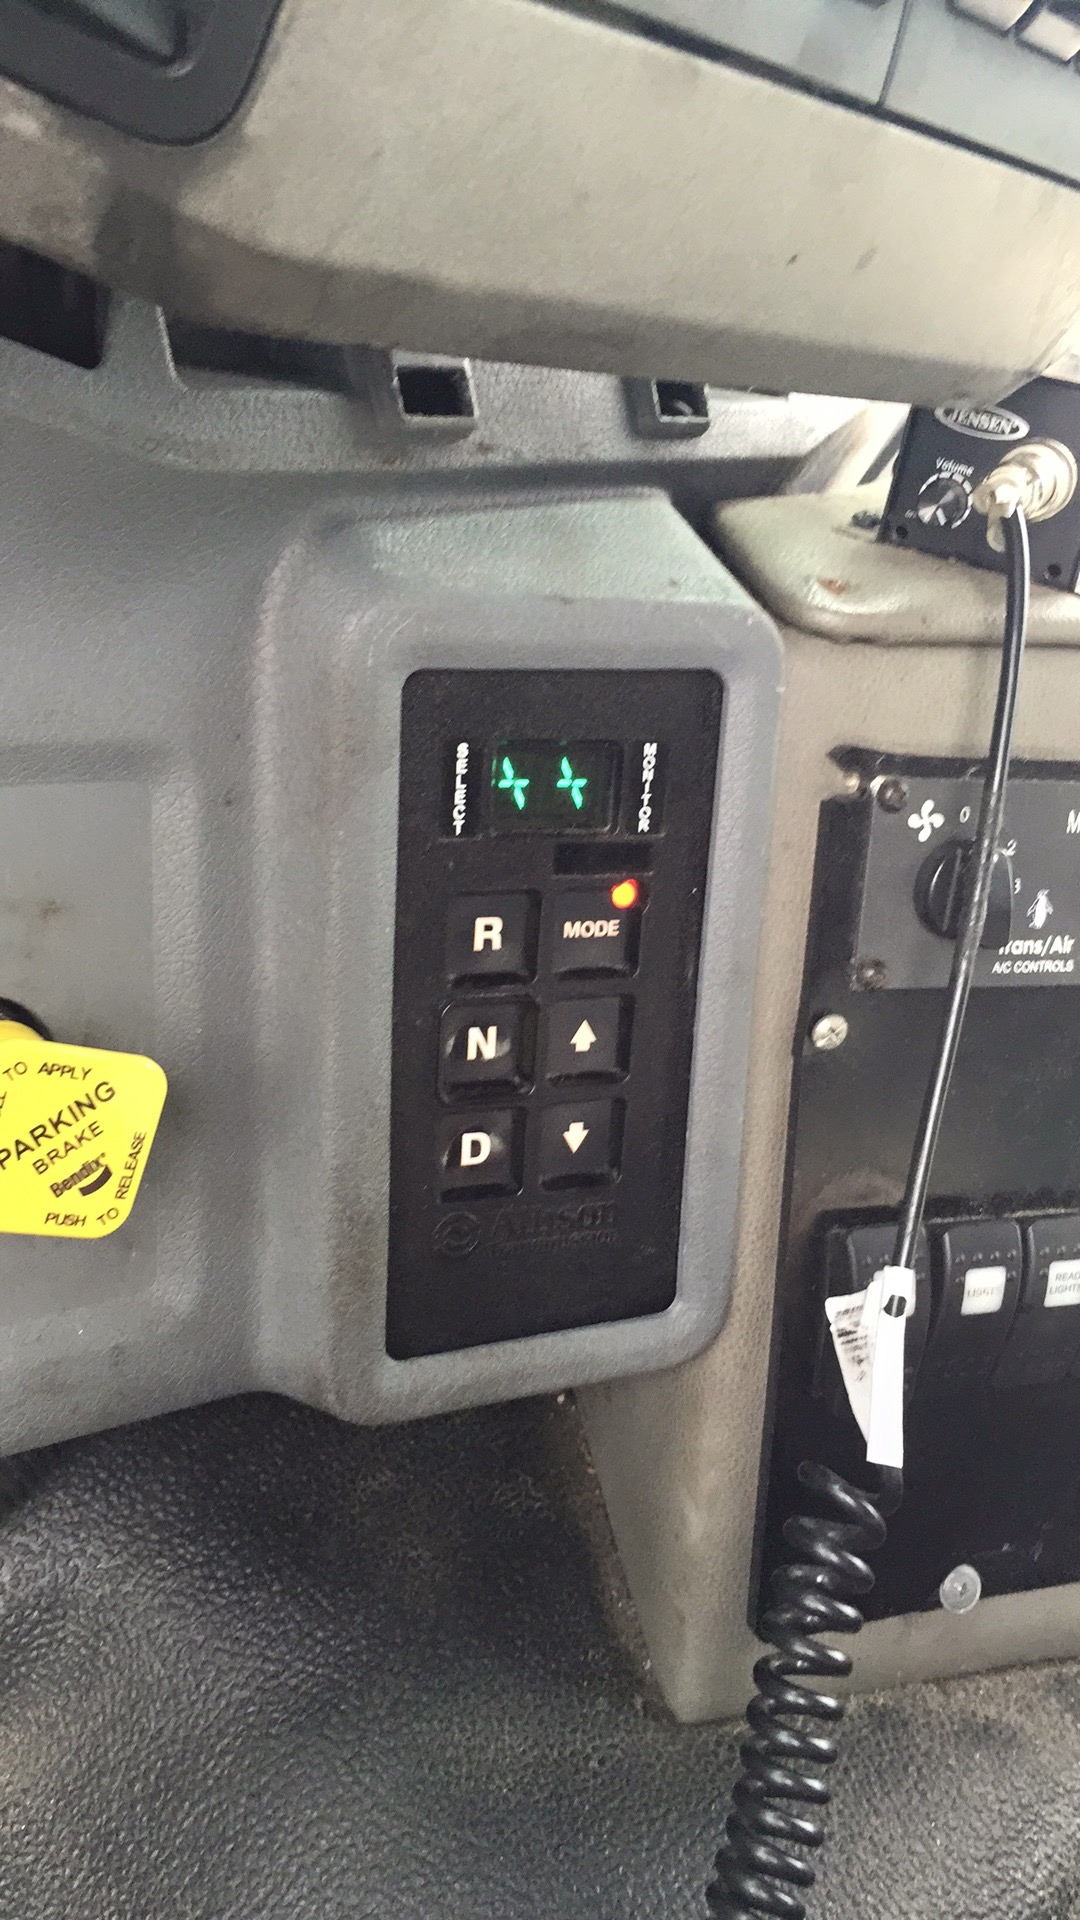 I have a 2011 Ford F-750 6 7isb with Allison 3000 transmission  I